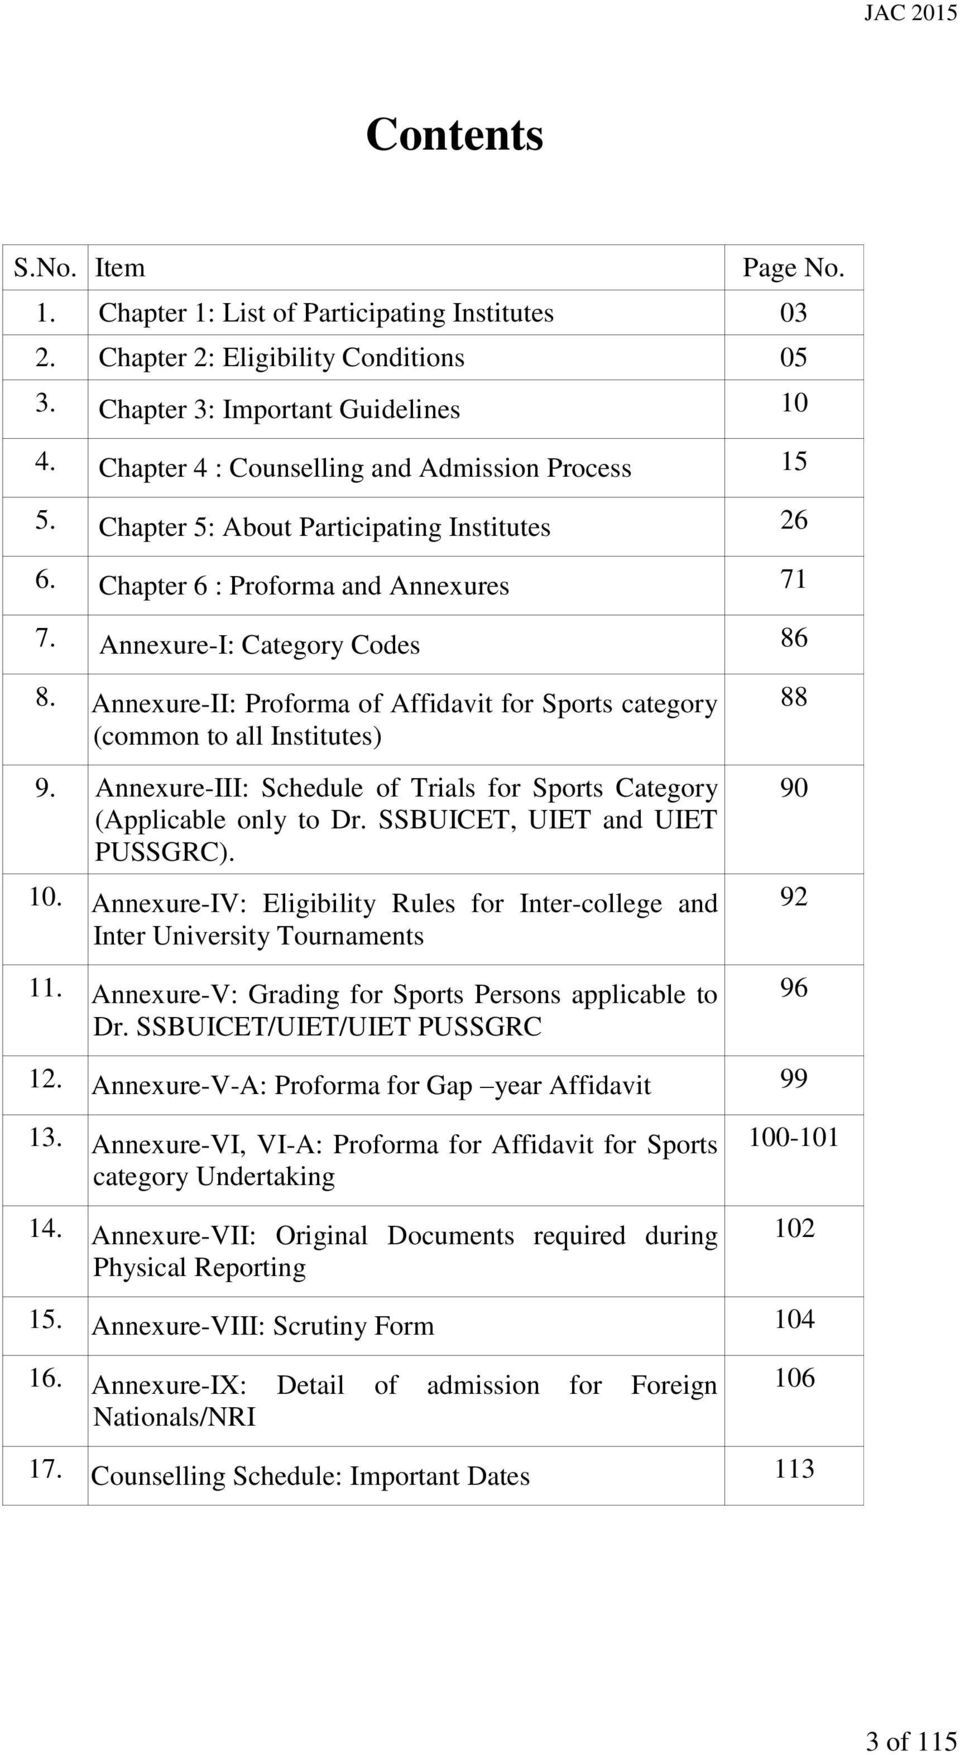 Annexure-II: Proforma of Affidavit for Sports category (common to all Institutes) 88 9. Annexure-III: Schedule of Trials for Sports Category (Applicable only to Dr. SSBUICET, UIET and UIET PUSSGRC).